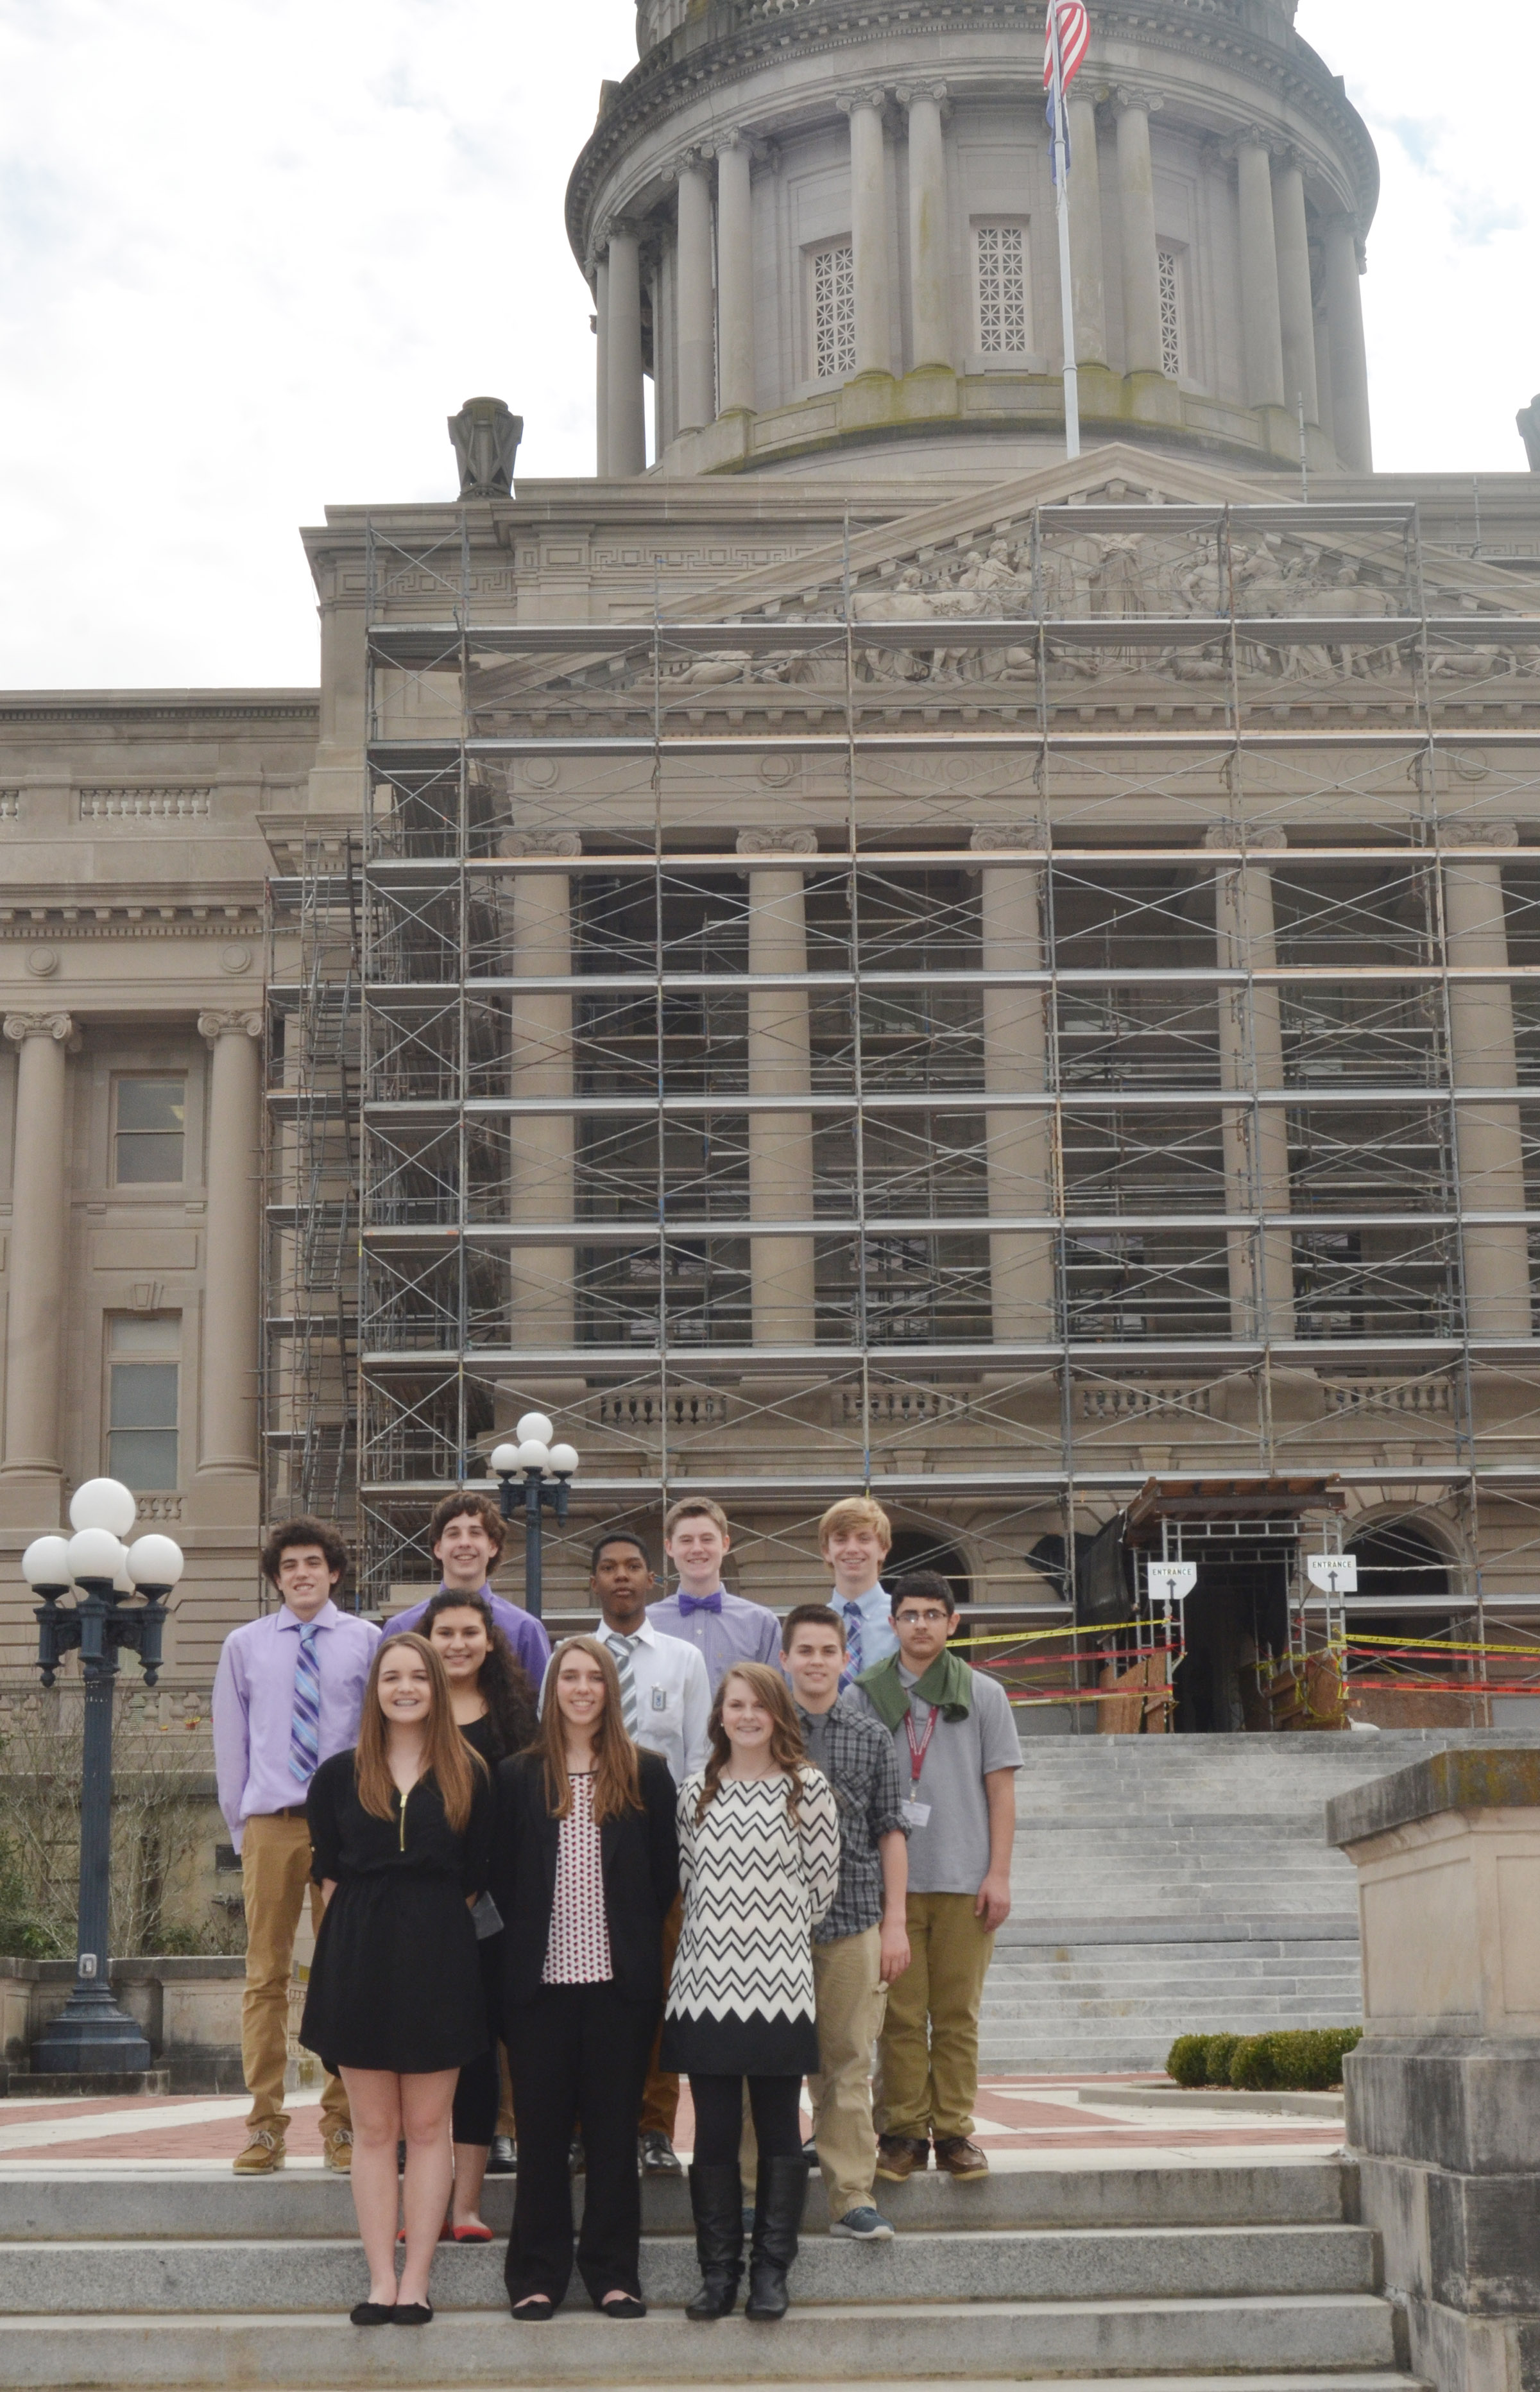 CMS CU leadership students pose for a photo outside the Kentucky capitol. From left, front, are Kenzi Forbis, Abi Wiedewitsch and Taylor Knight. Second row, Anna Clara Moura, Zaquan Cowan, Clark Kidwell and Hassan Alabusalim. Back, Kameron Smith, John Orberson, Tristin Faulkner and Arren Hash.